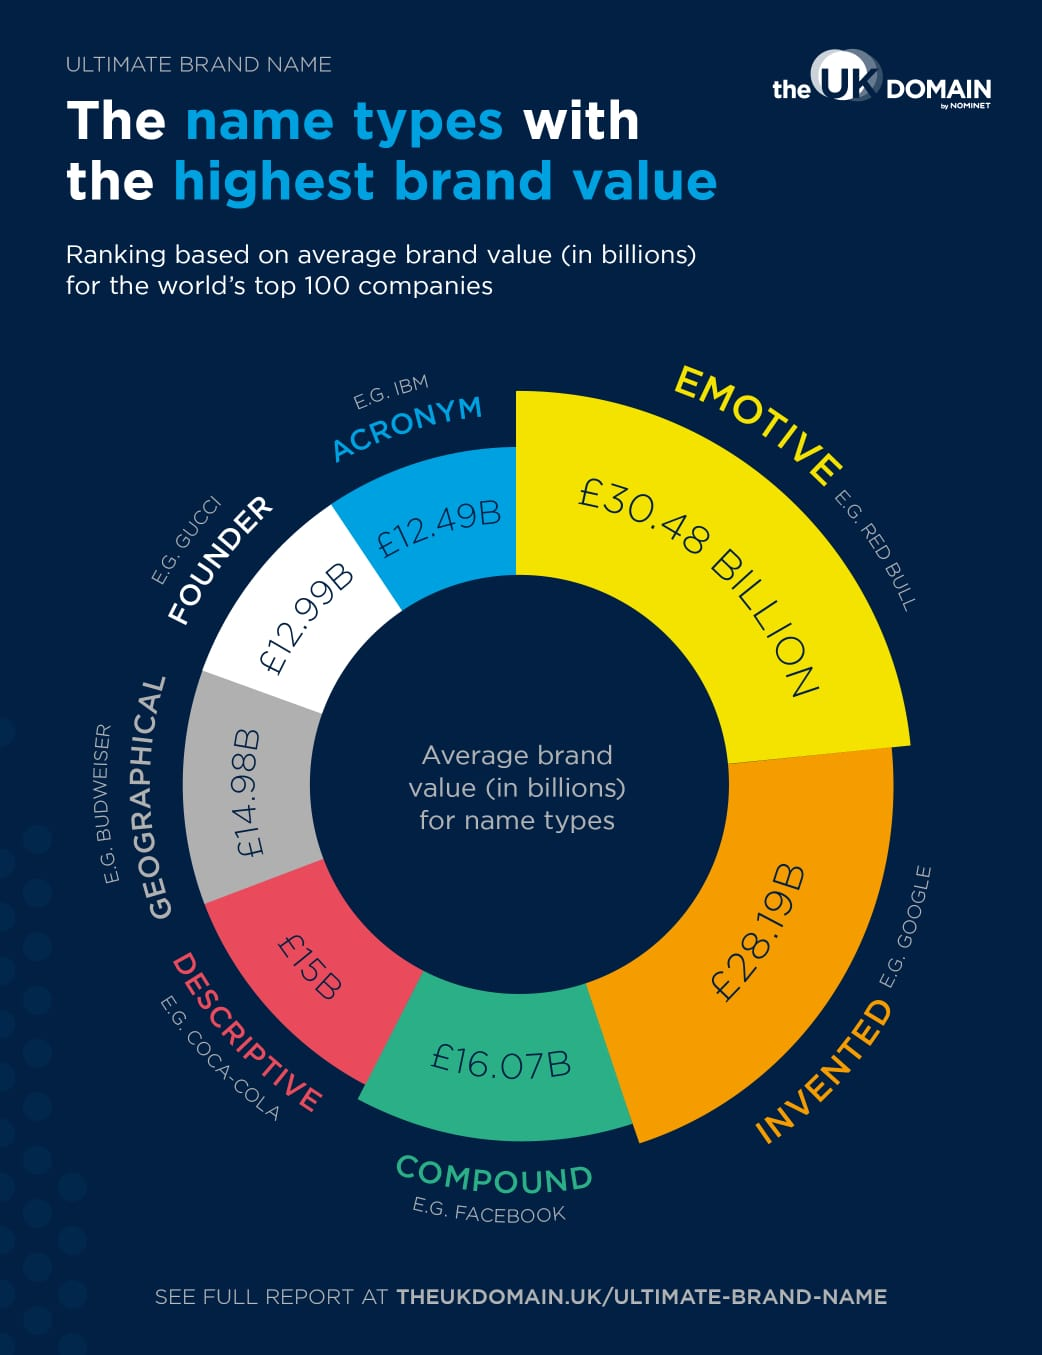 Doughnut chart depicting name types with the highest brand value